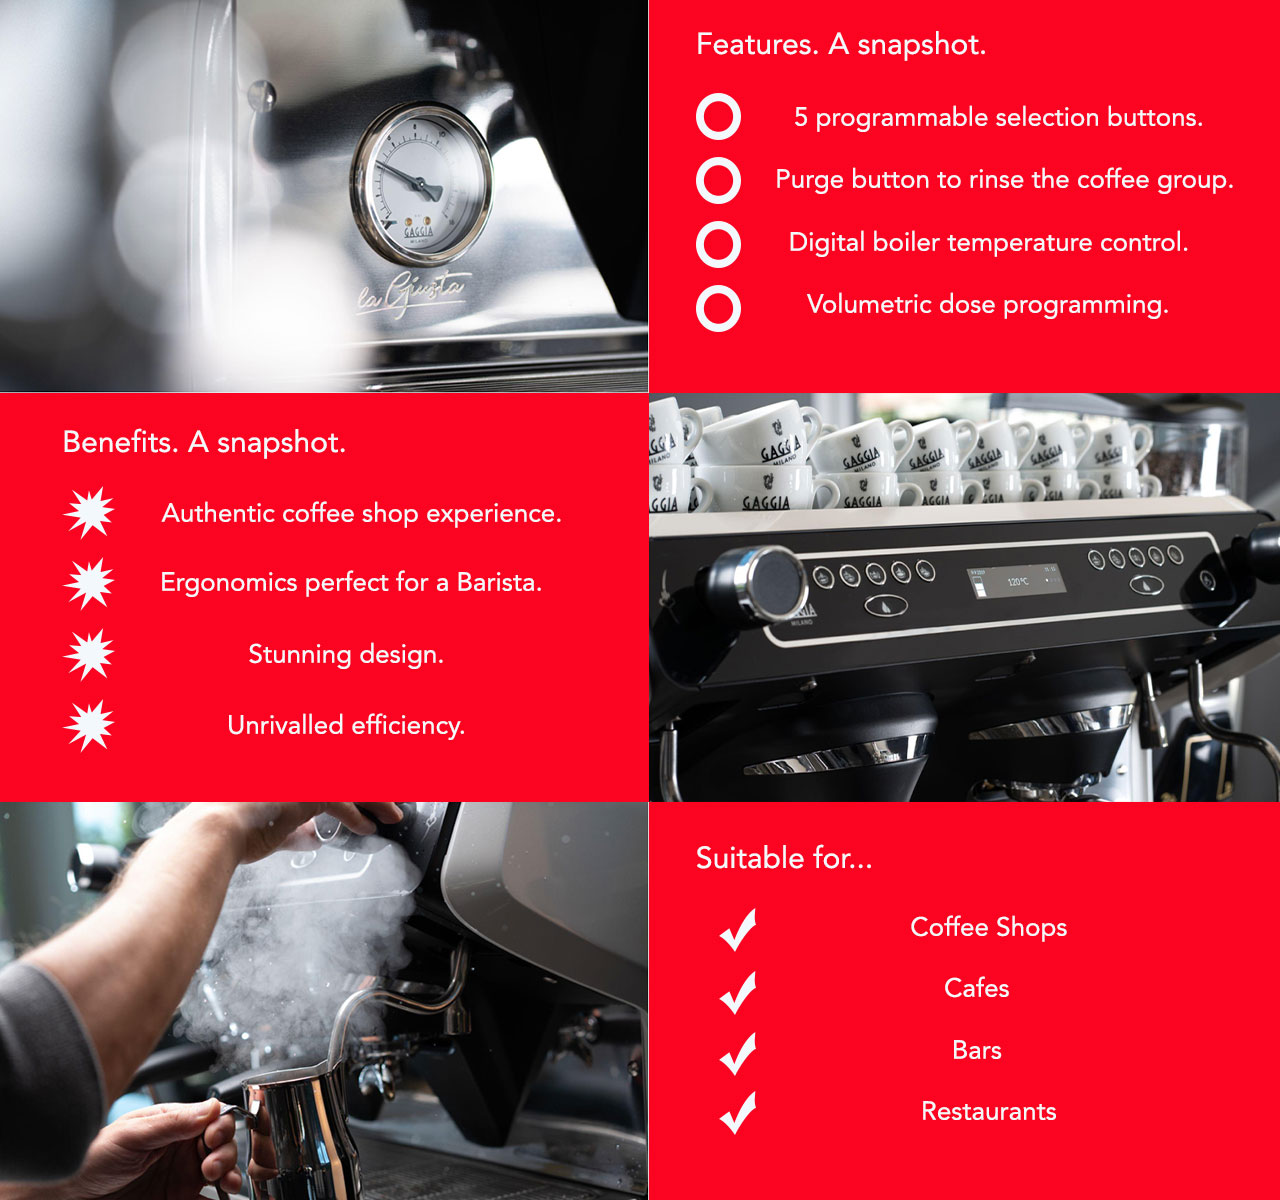 The Gaggia La Giusta traditional coffee machine delivers industry leading features for the modern day Barista.